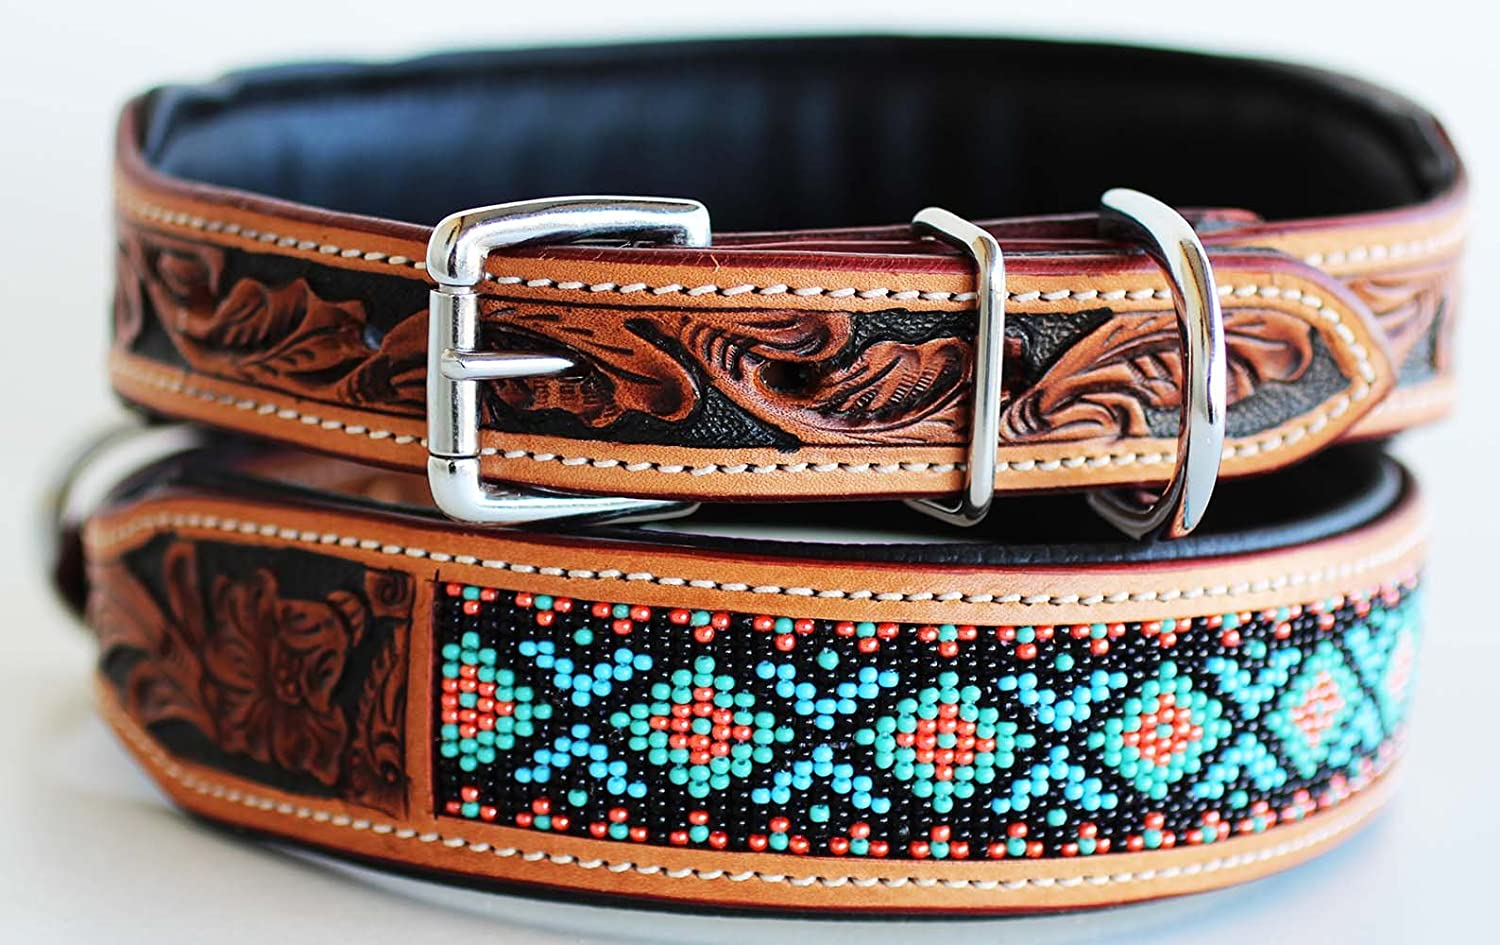 XSmall 9''- 13'' Amish Hand Tooled 100% Leather Puppy Dog Collar Adjustable Padded Canine 6057